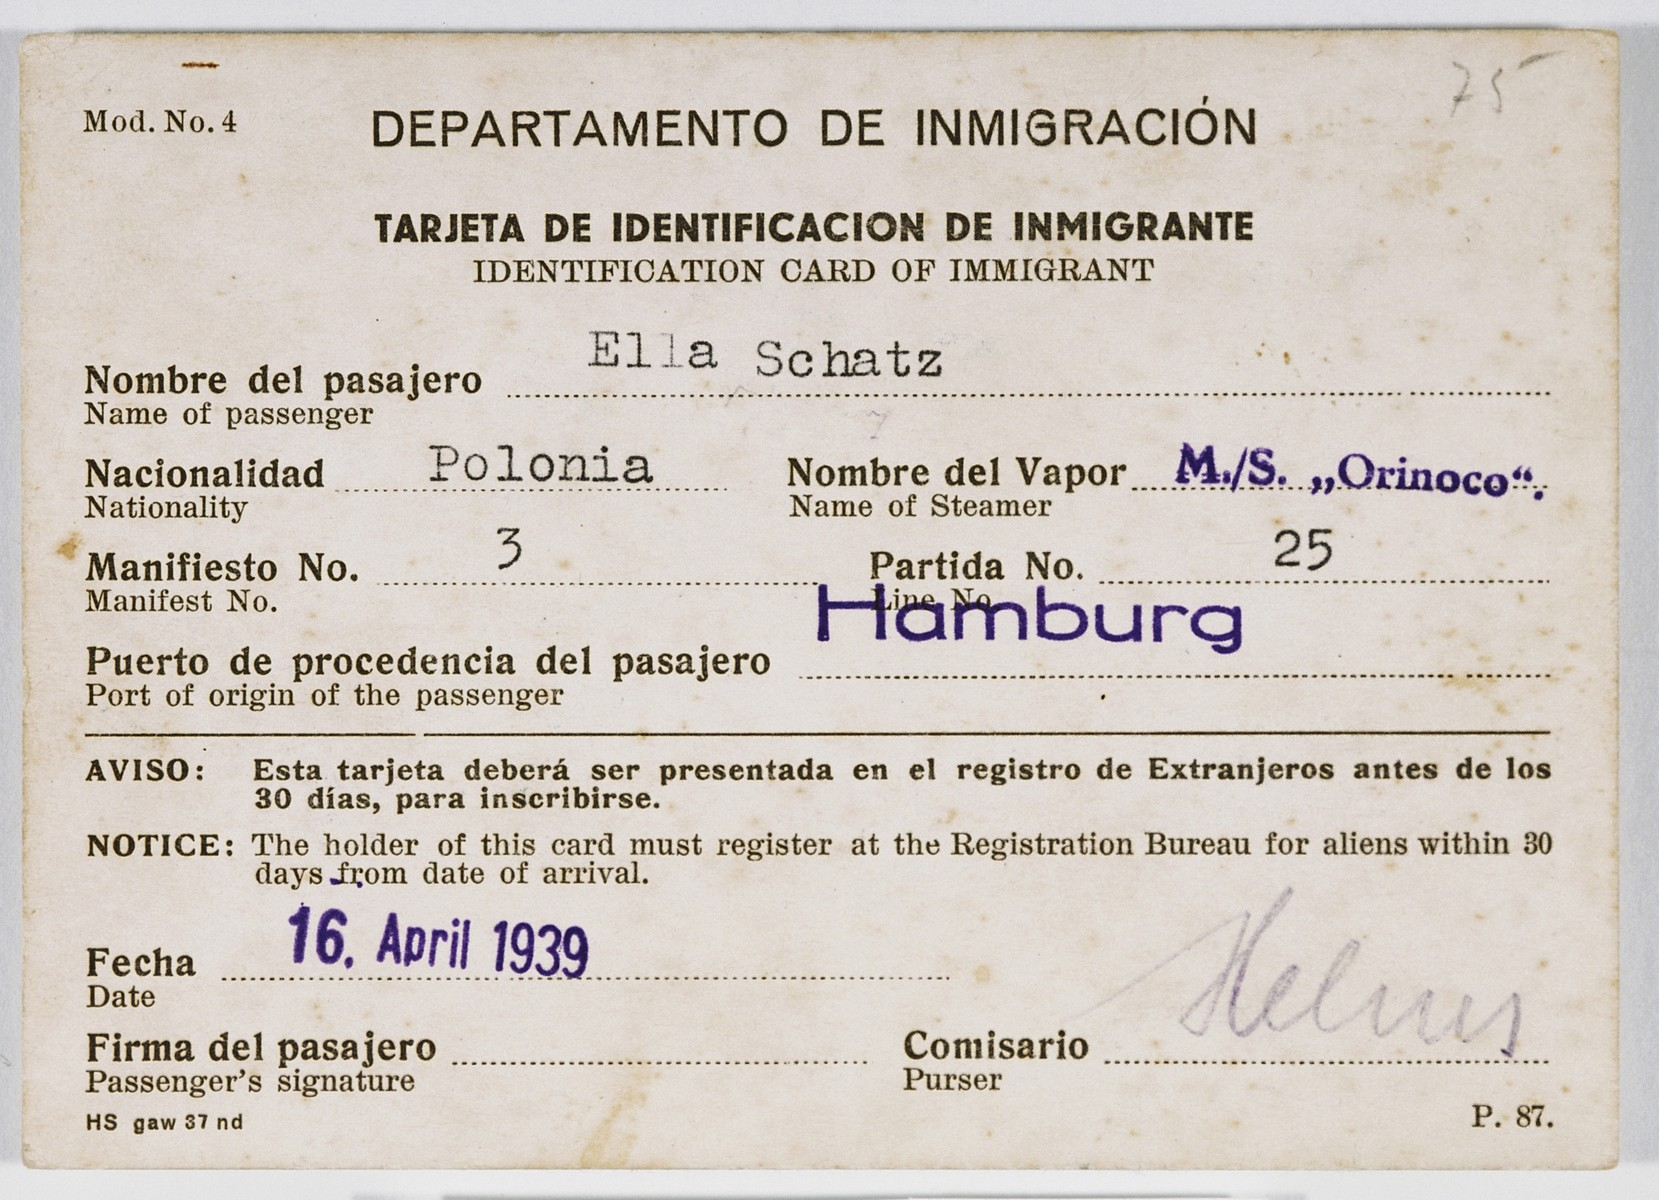 Cuban immigration papers issued to Ella Schatz, a passenger on board the Orinoco.